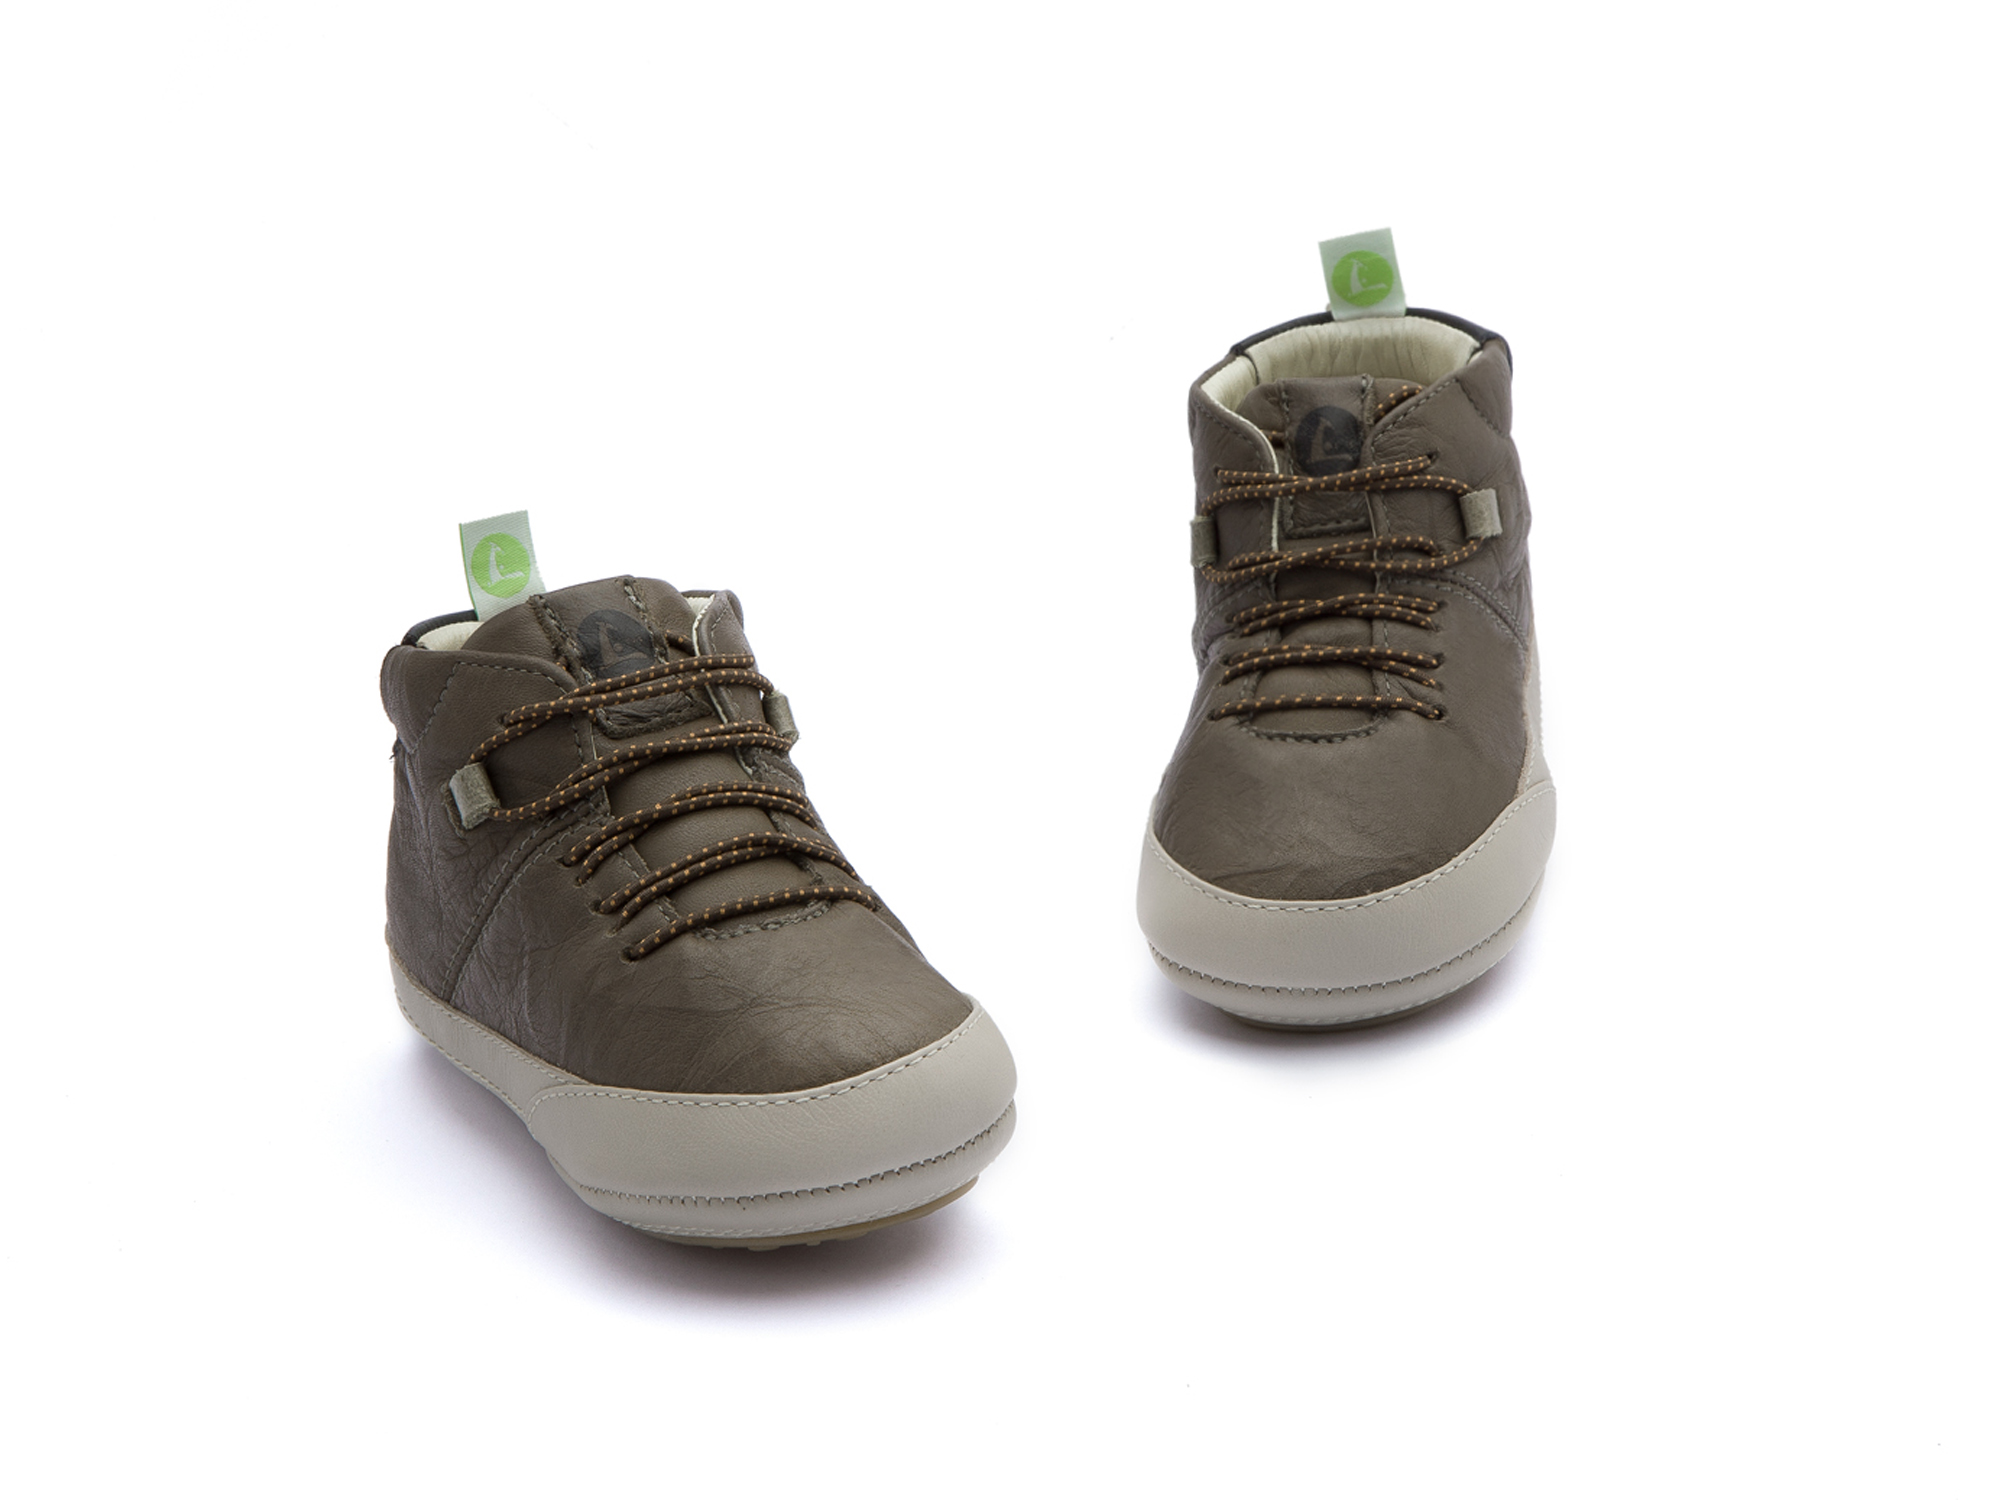 Bota Highlandy Green Crush/ Pumice Baby 0 à 2 anos - 2